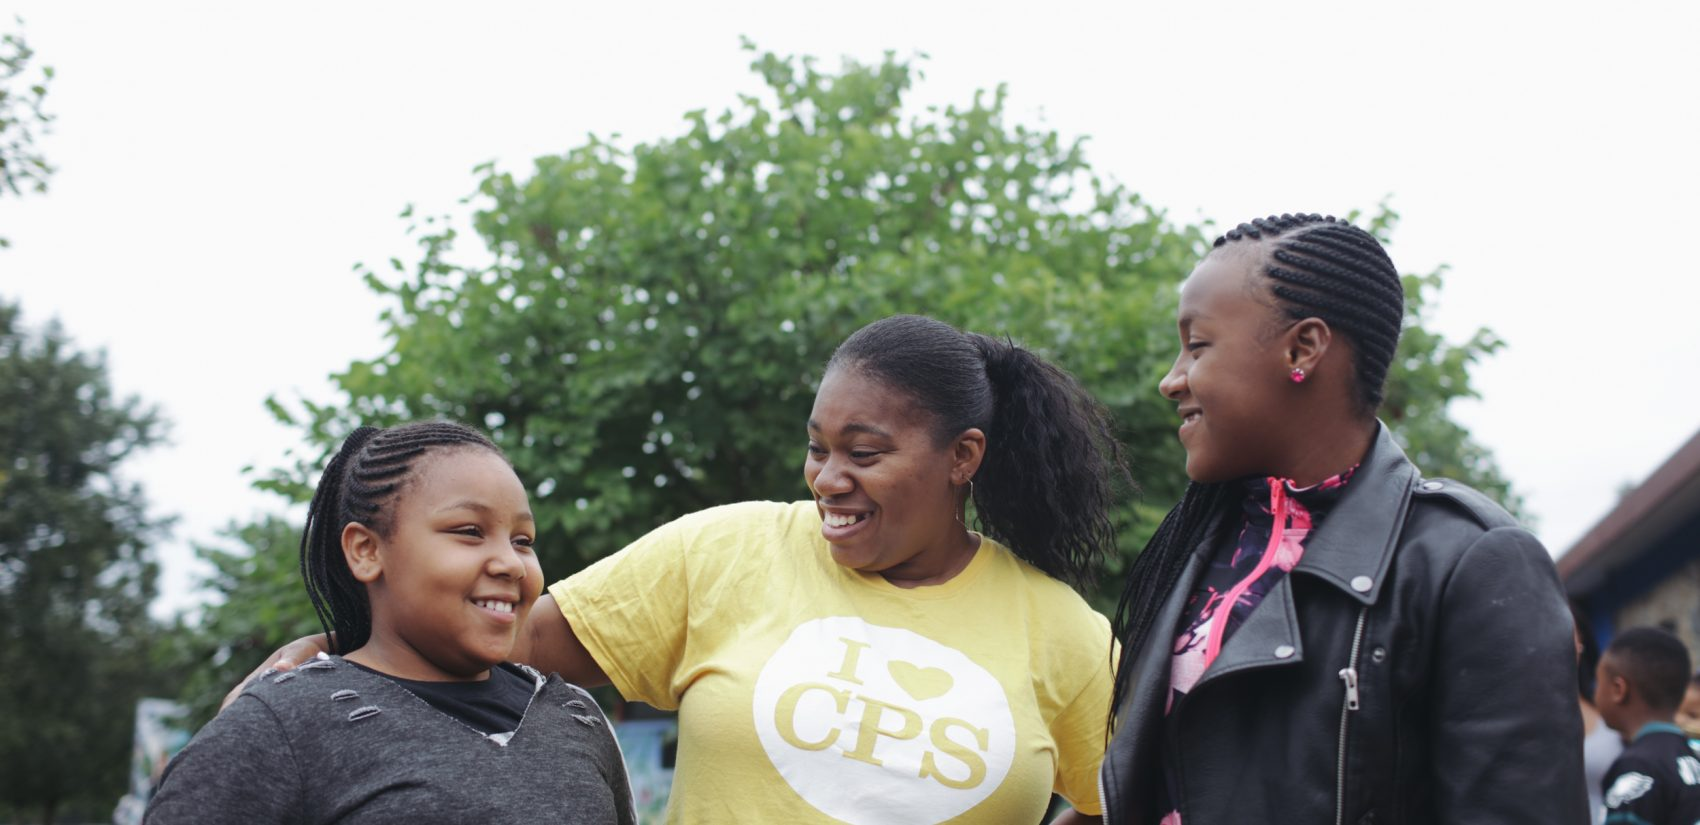 Sisters Kayla (left) and Kiarra Sils, seen here with their mom, say they're excited to visit the Discovery Center. (Neal Santos for PlanPhilly)